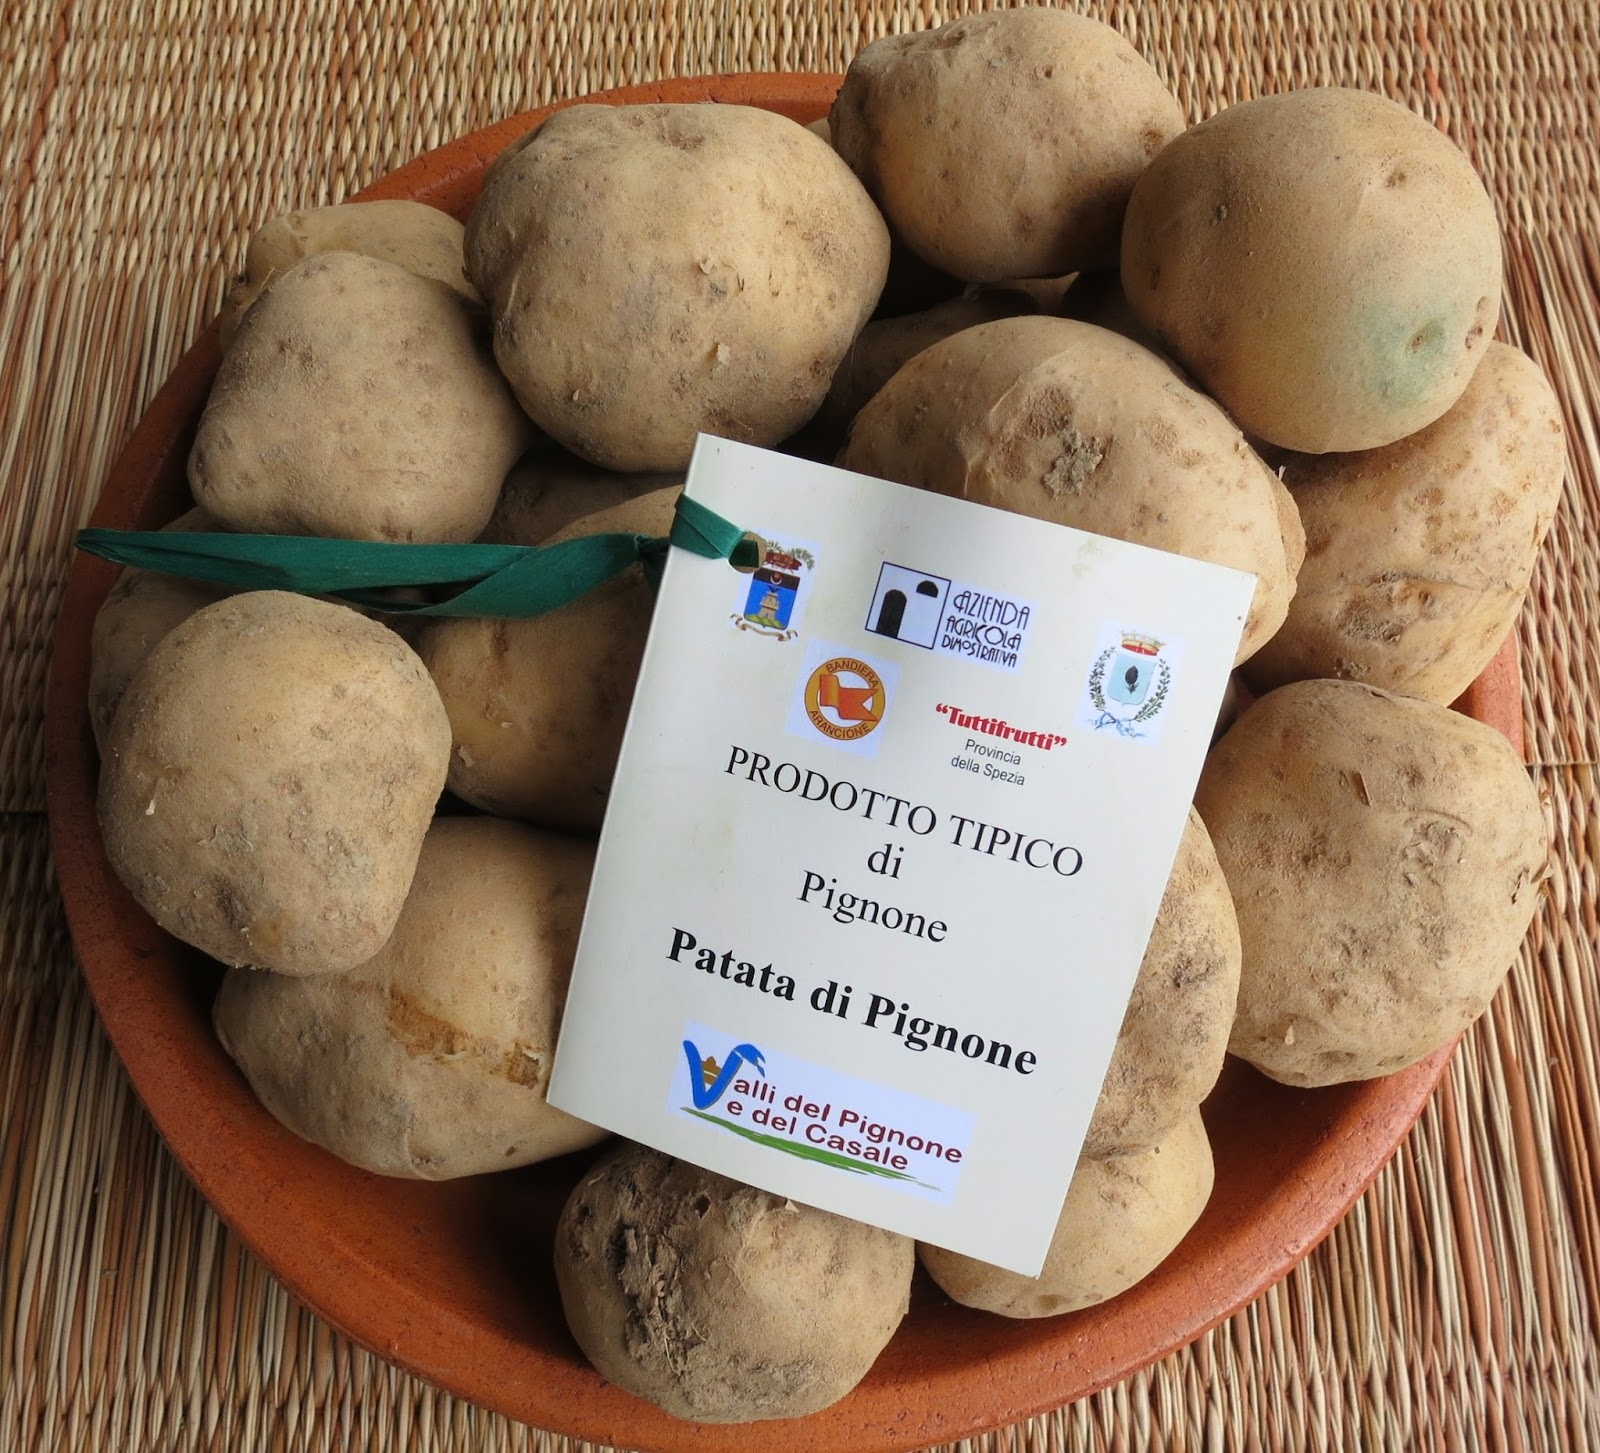 Potatoes of Pignone or Patata di Pignone